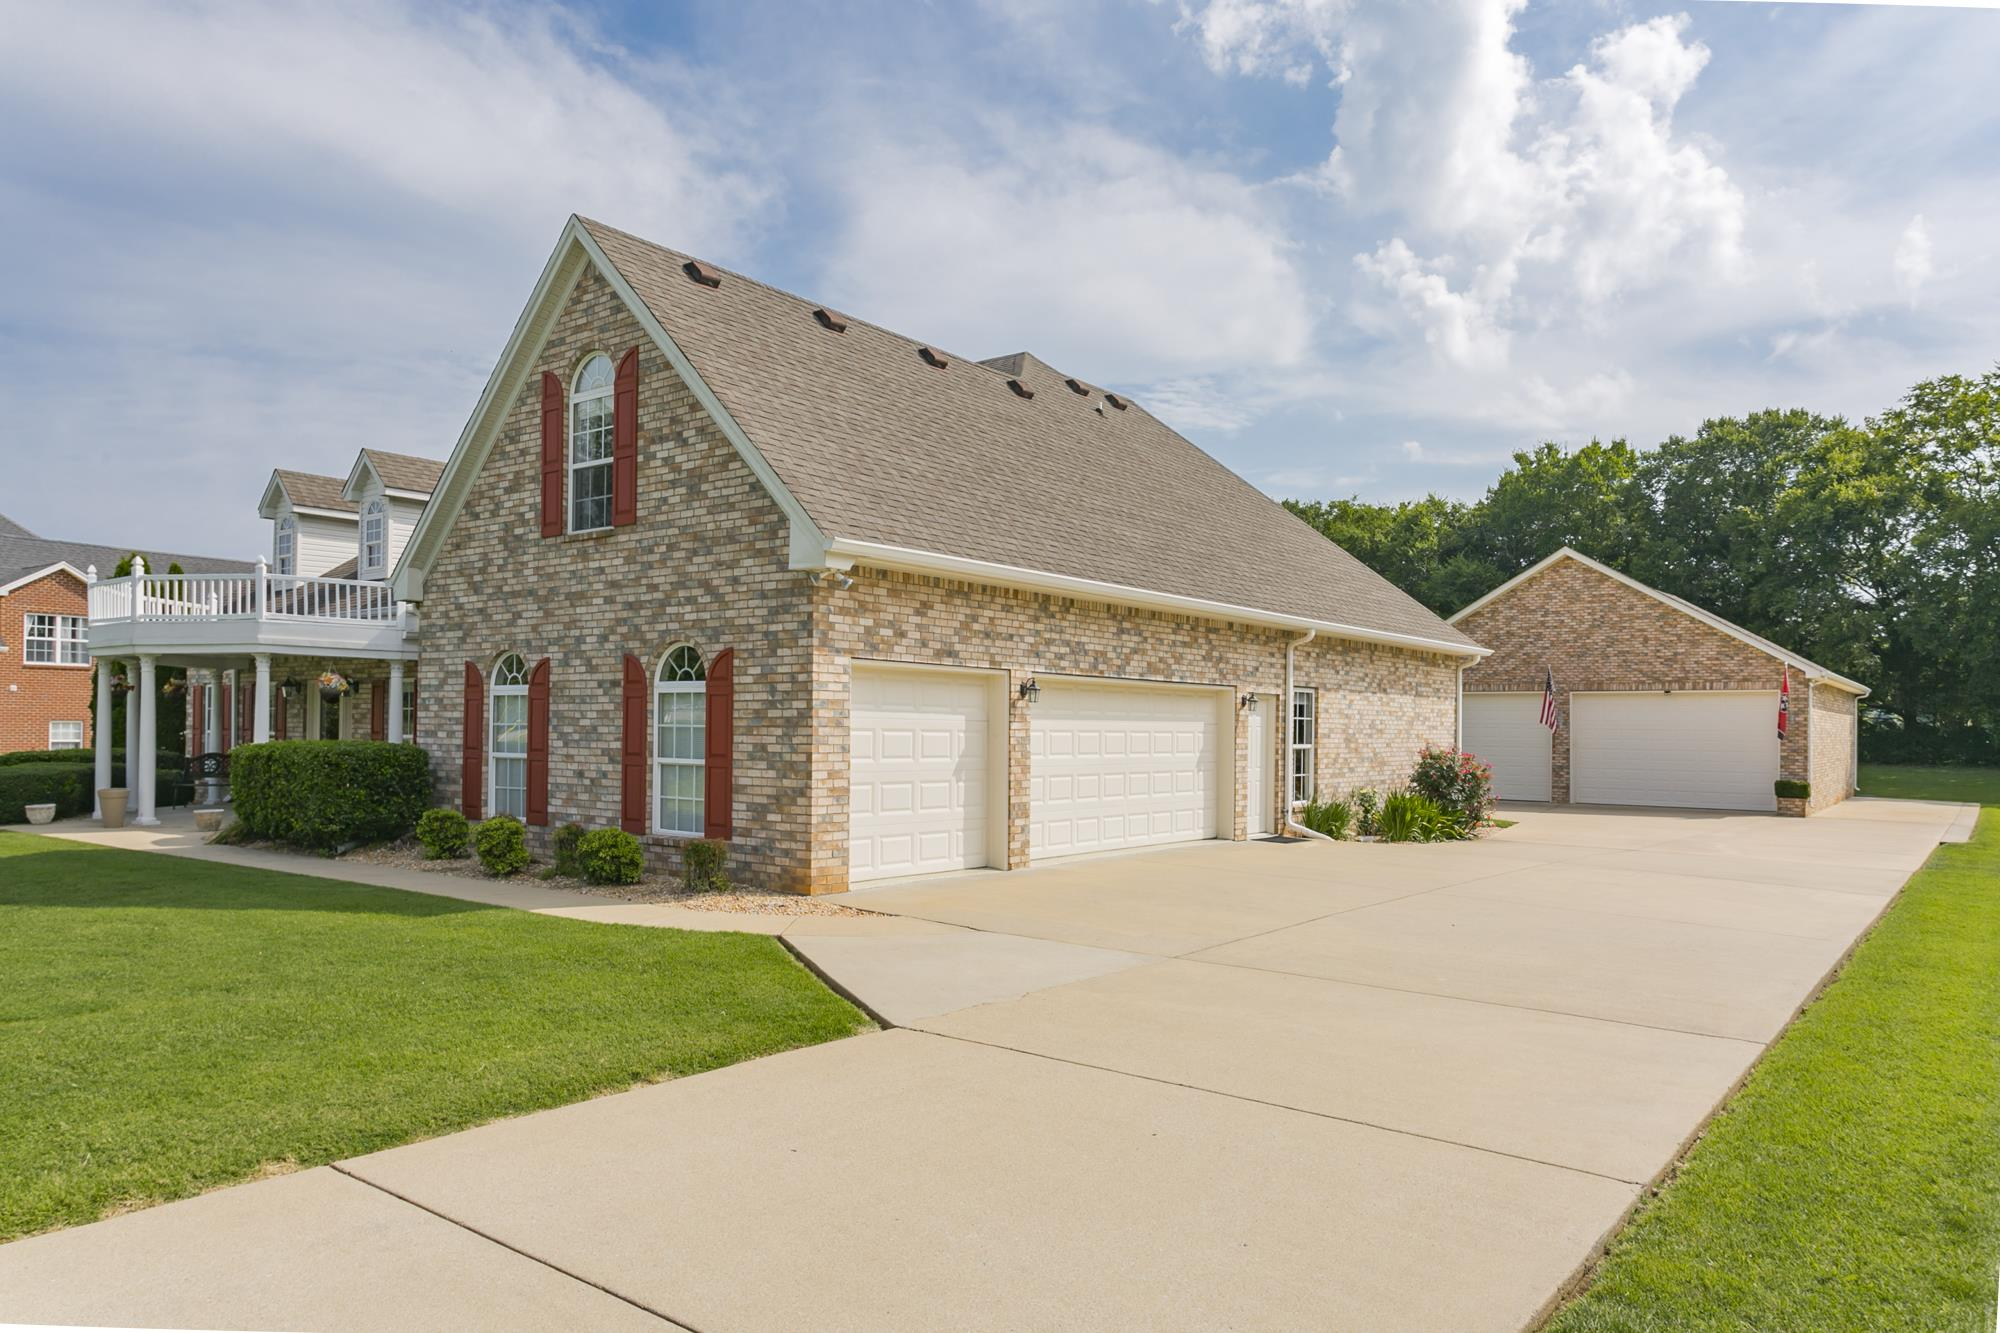 152 Lakepointe Rd, LA VERGNE, TN 37086 - LA VERGNE, TN real estate listing